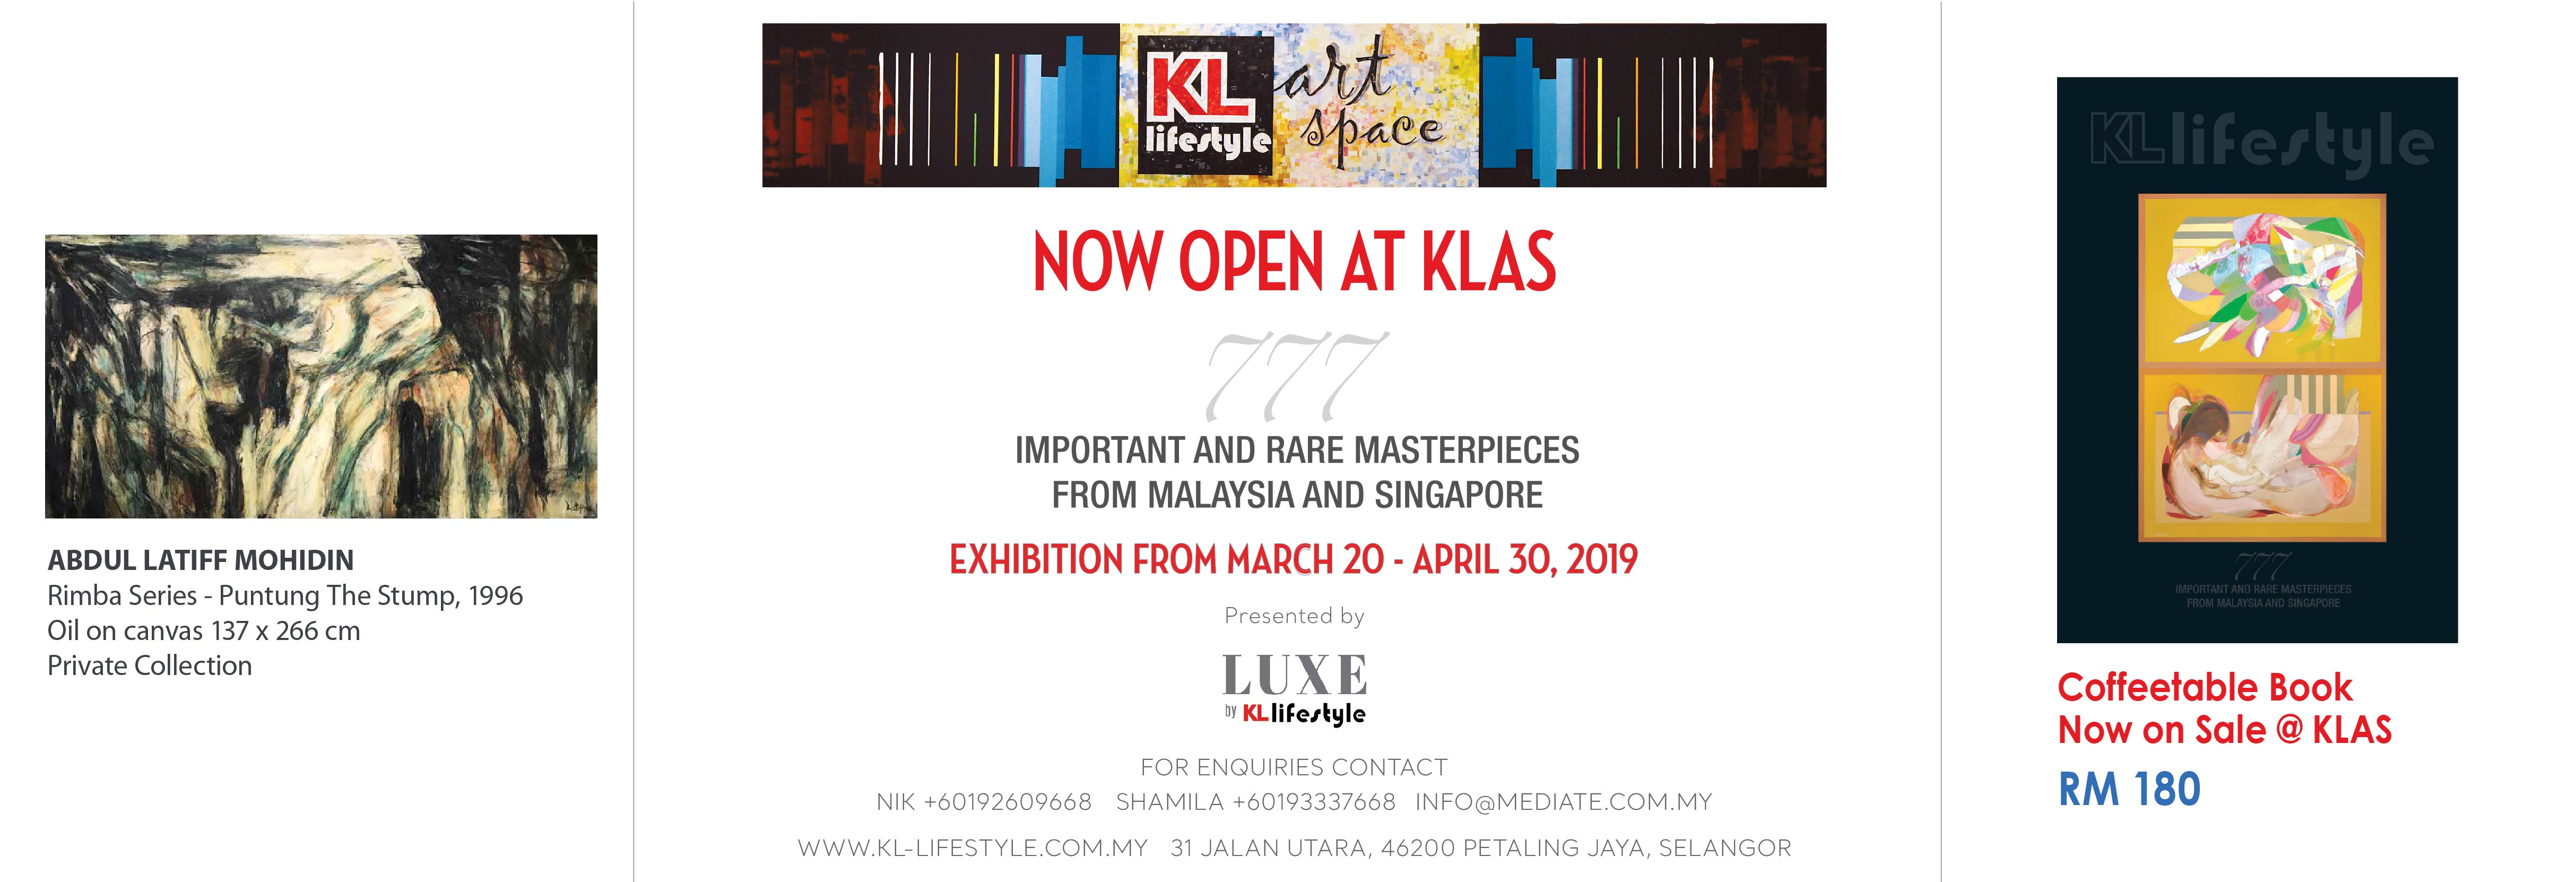 777 NOW OPEN AT KLAS COFFEE BOOK WEB BANNER-05